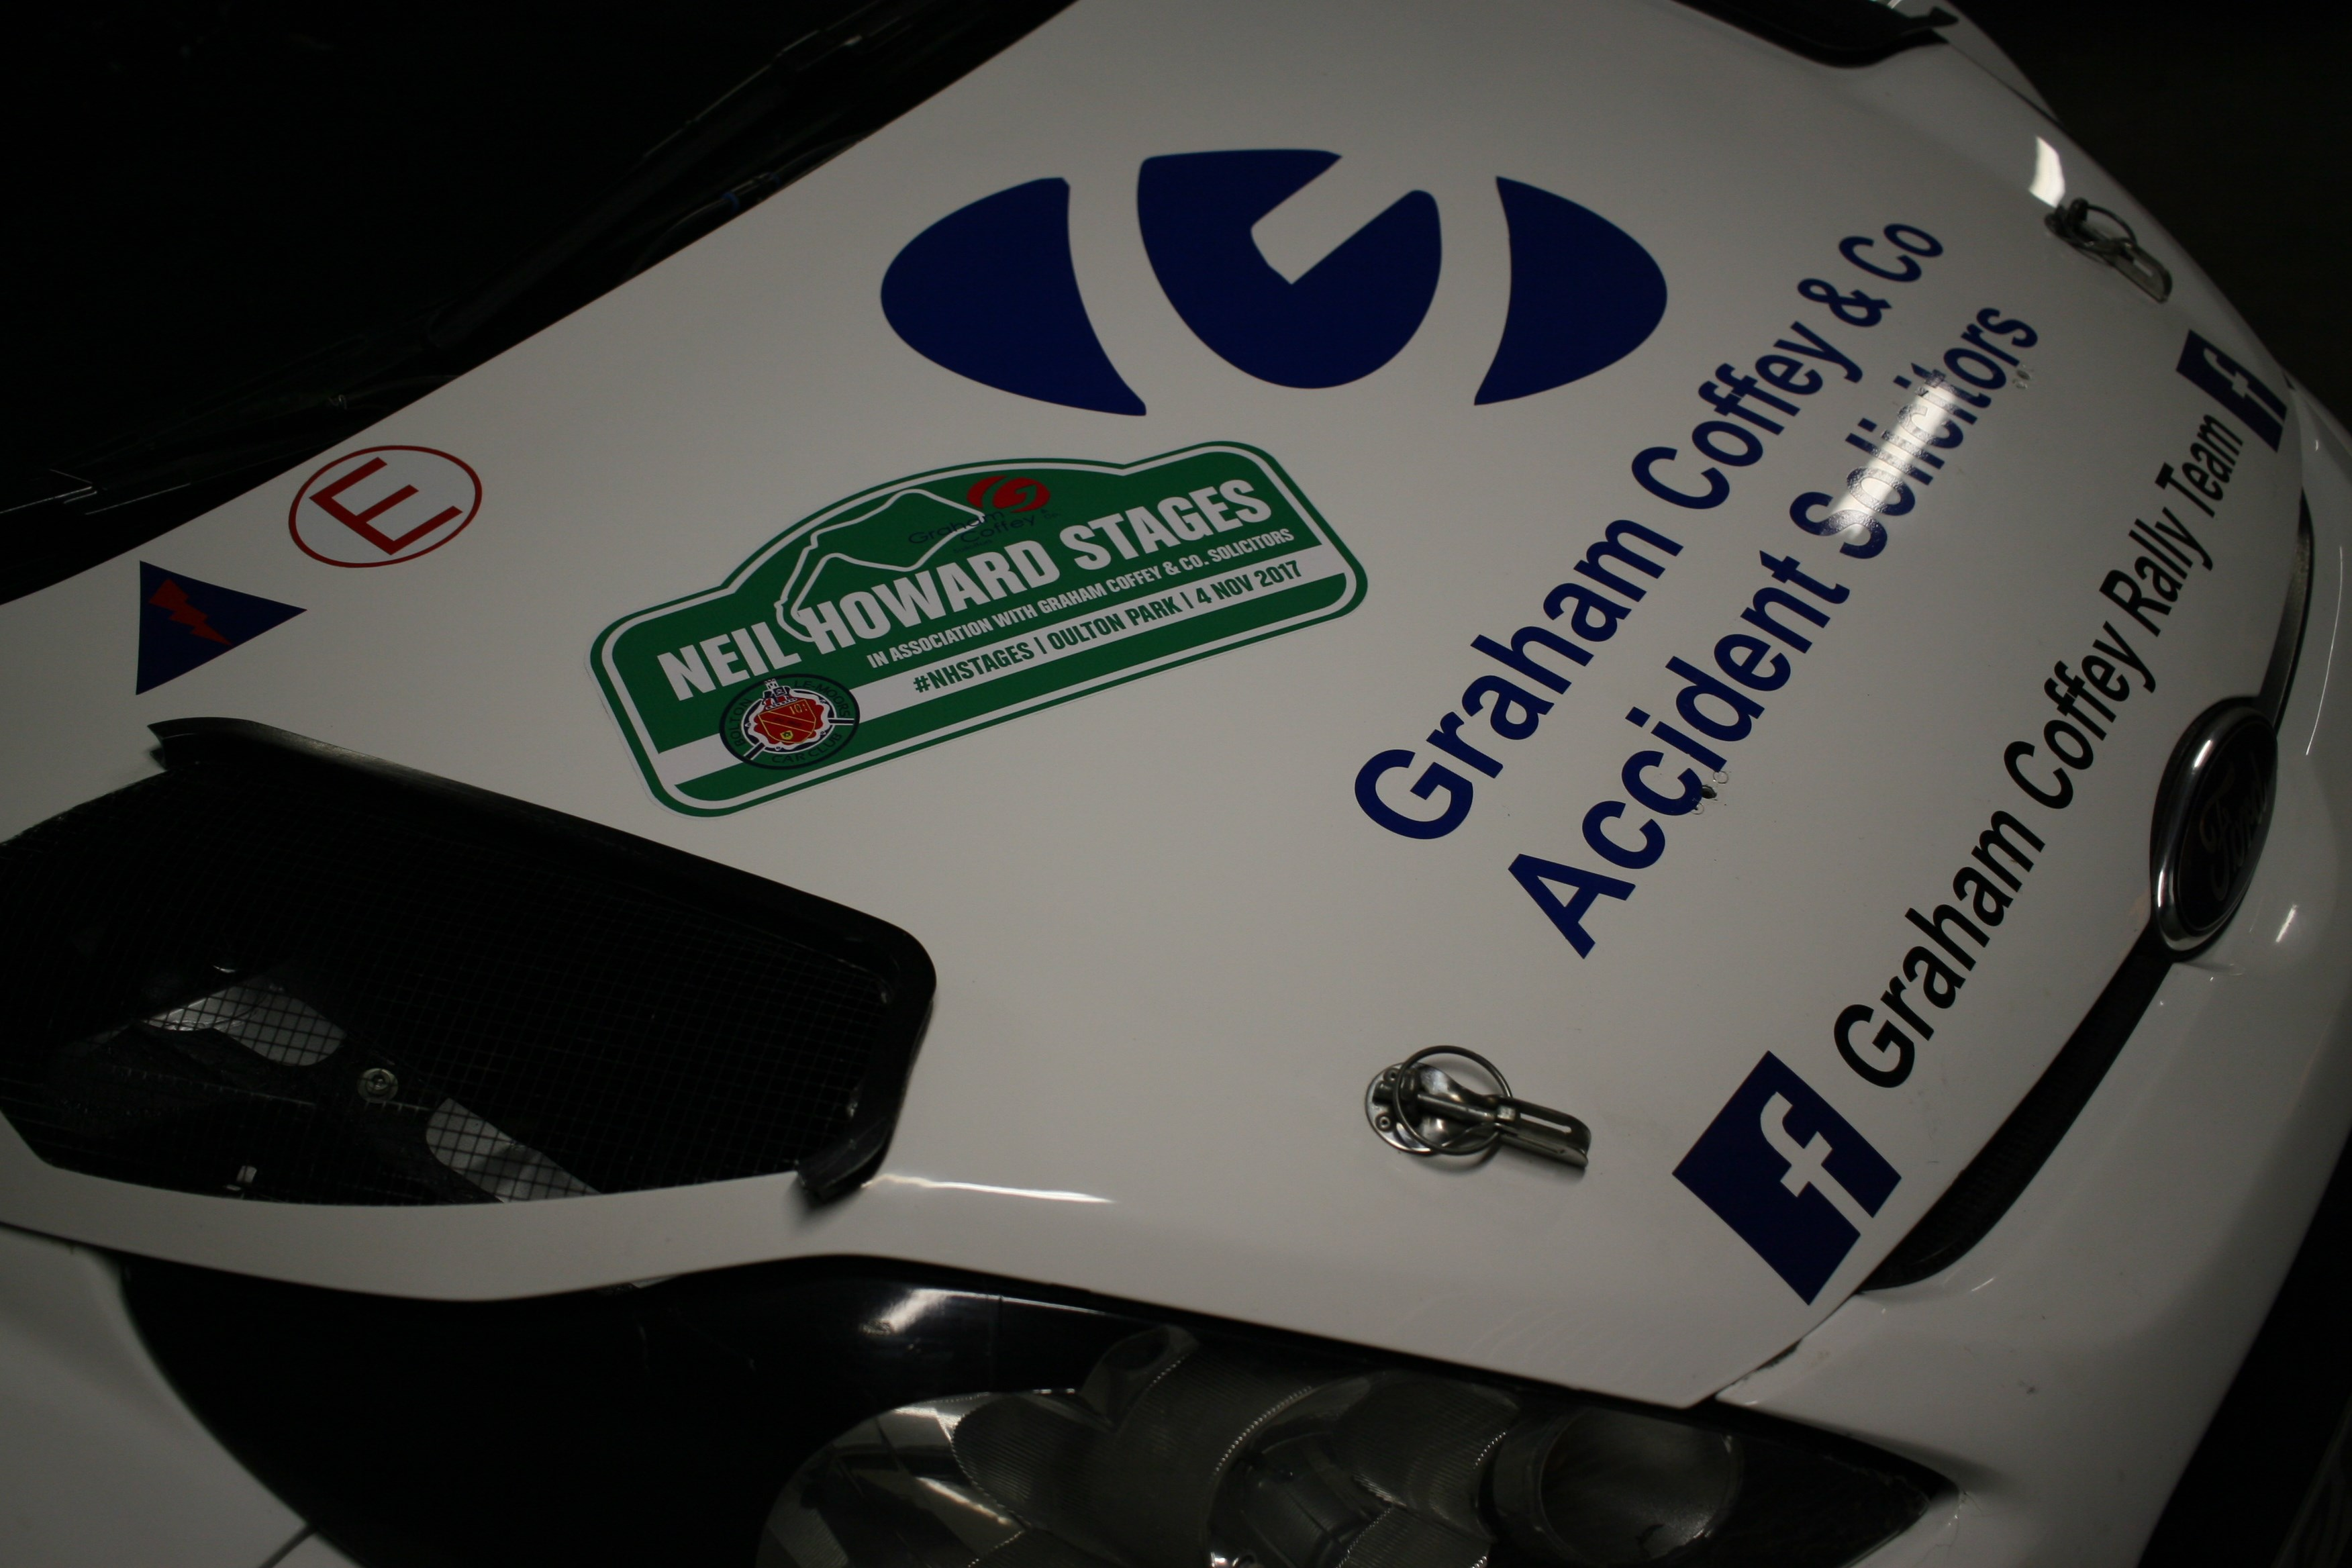 Graham Coffey & Co Solicitors Teams up with the Motorsport News Circuit Rally Championship in Association with MSVR